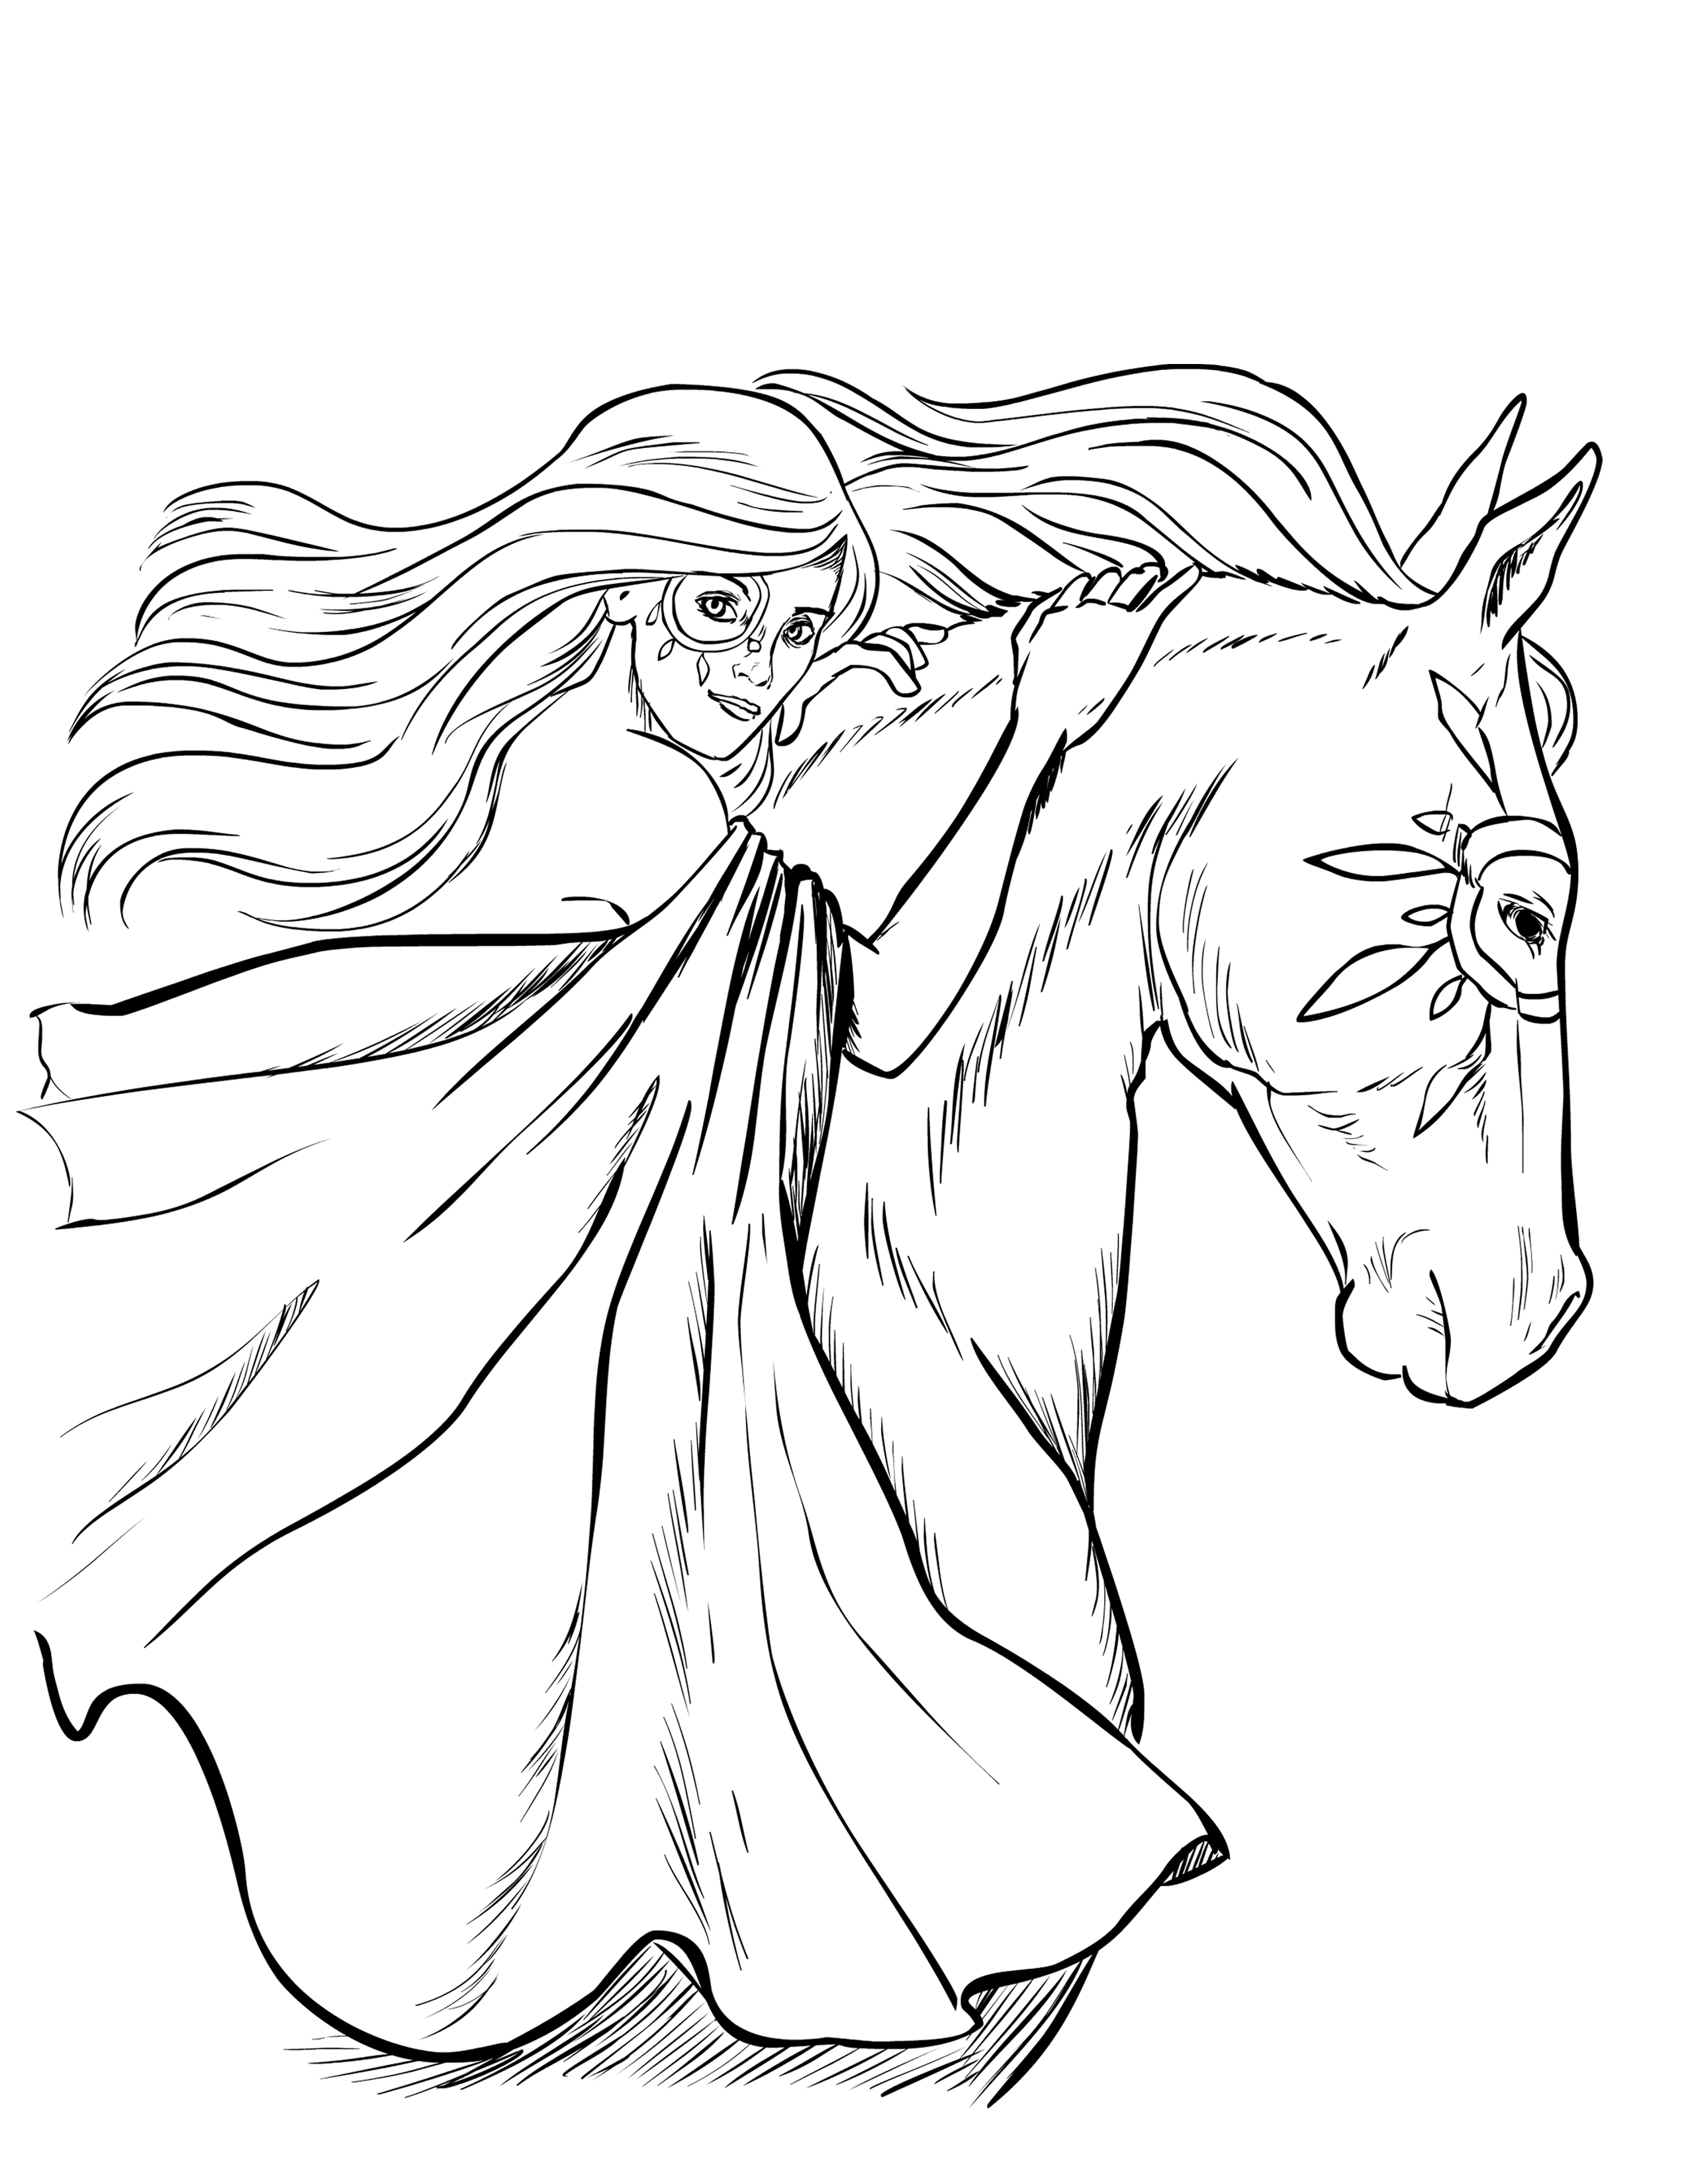 detailed horse coloring pages horse coloring pics good you can print horse coloring coloring pages horse detailed